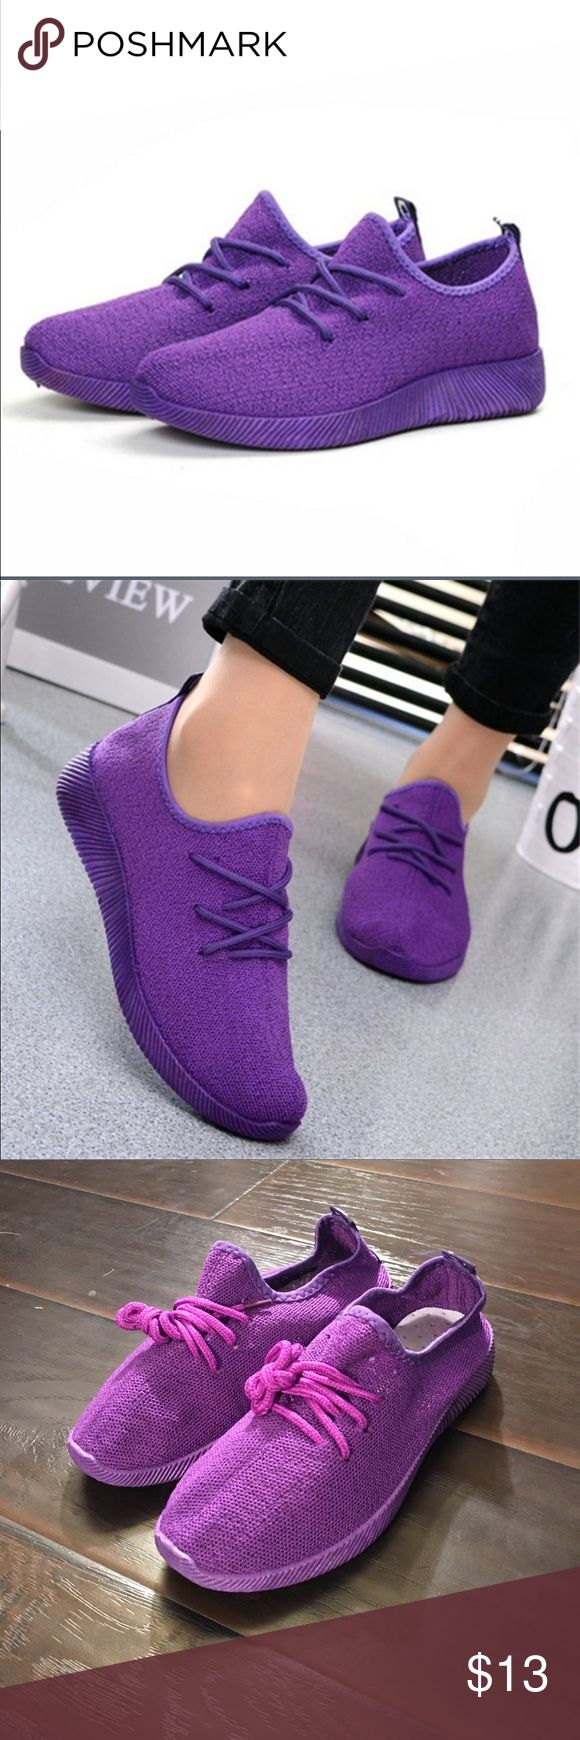 Bright purple sneakers Women's size 7 bright purple sneakers. Brand-new never worn and never walked in. All purple everything. NWT Shoes Athletic Shoes